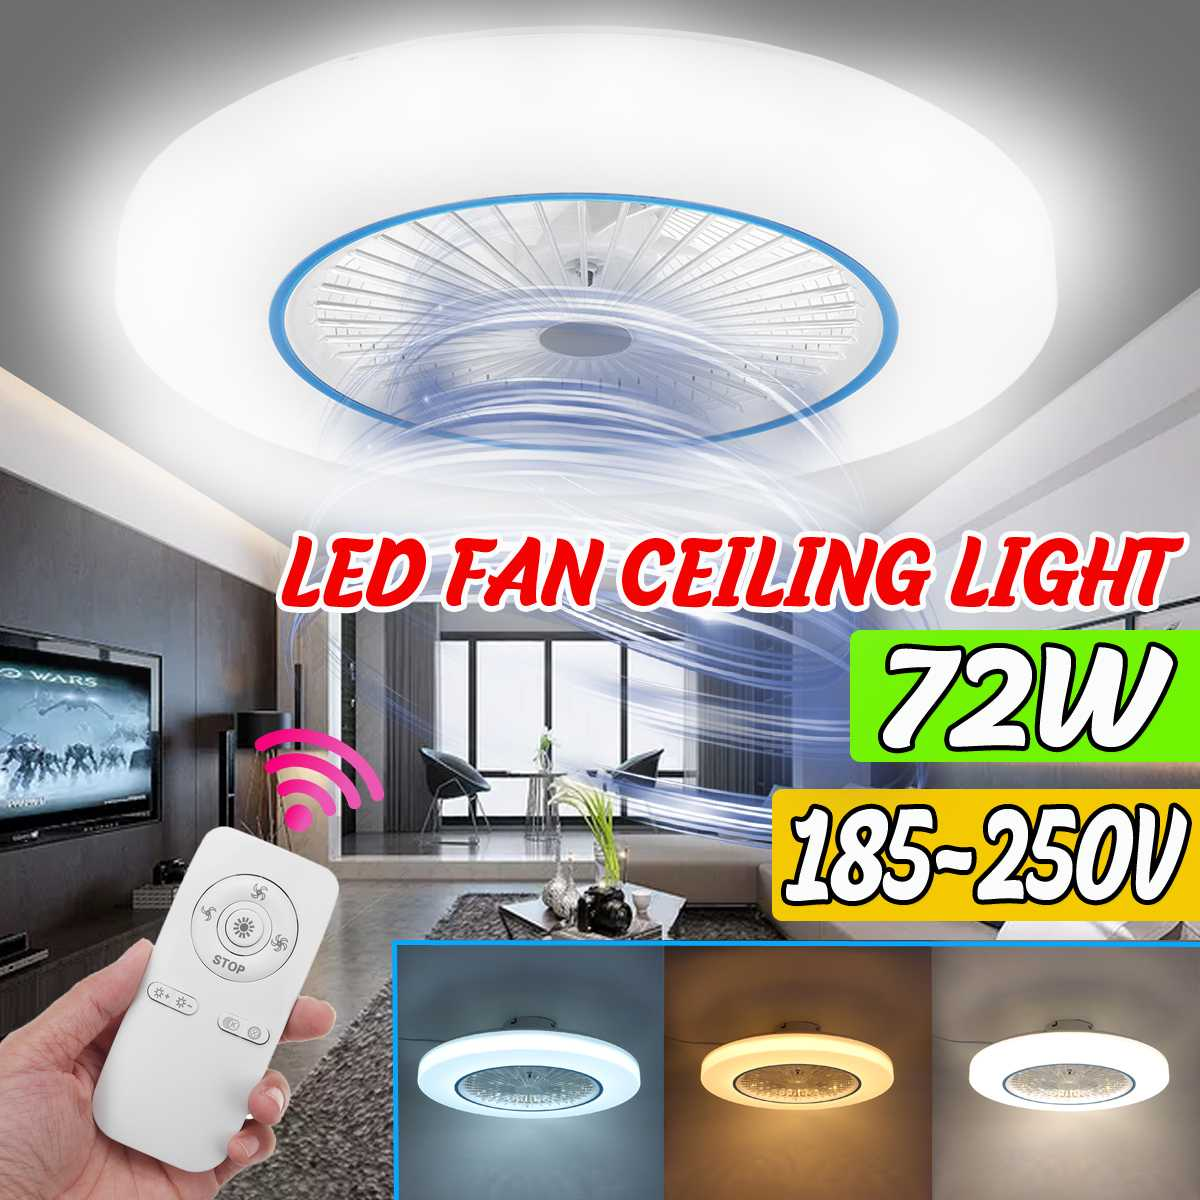 Learned 72w Led Ceiling Fan Light Ceiling Fan With Lights Remote Control Modern Lighting Three-color Dimming Ceiling Light 58*18cm Clear And Distinctive